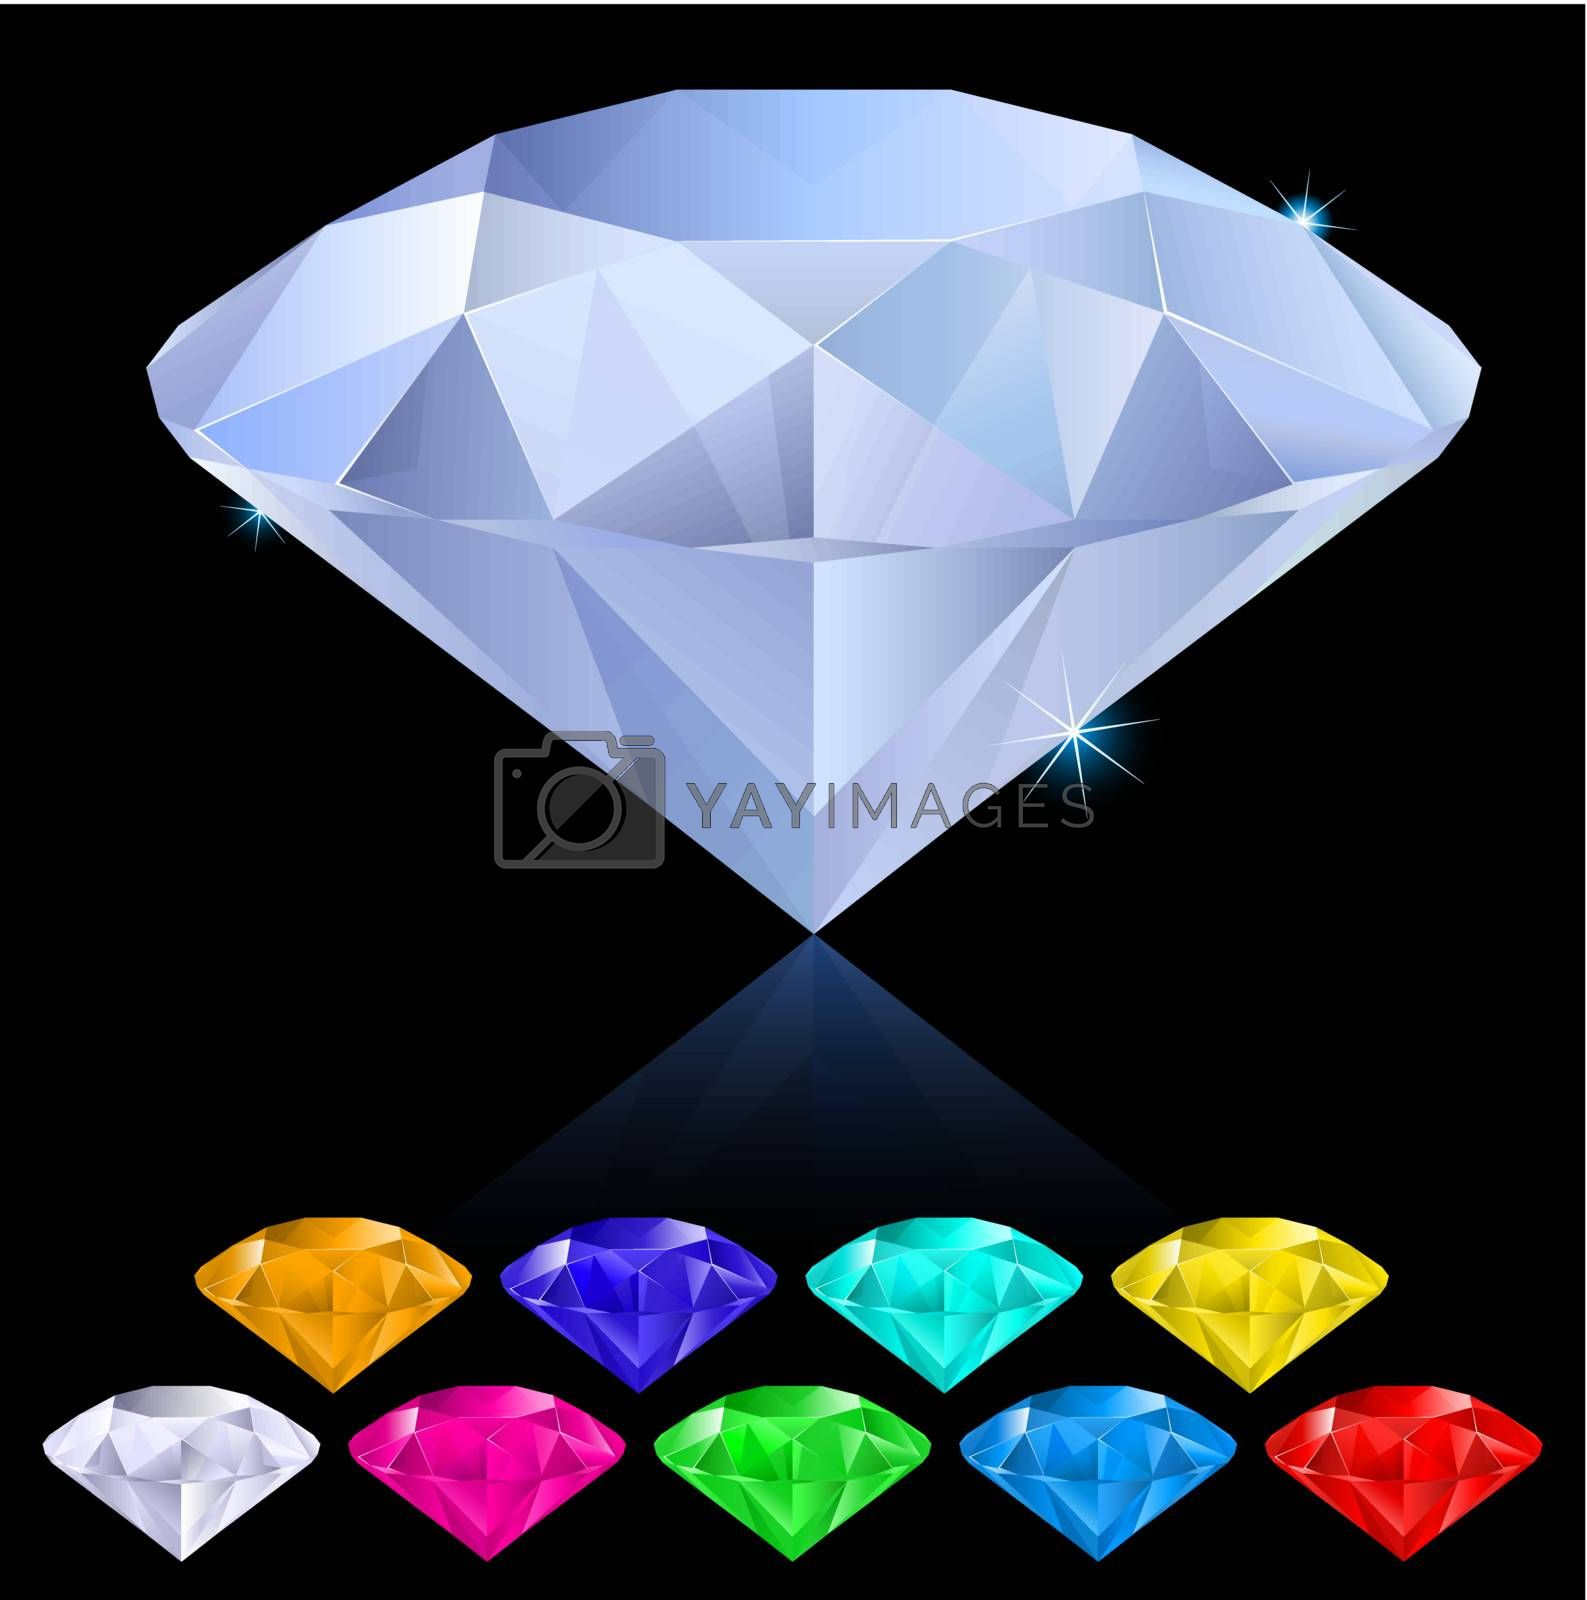 Realistic diamonds in different colors. Illustration for design on black background